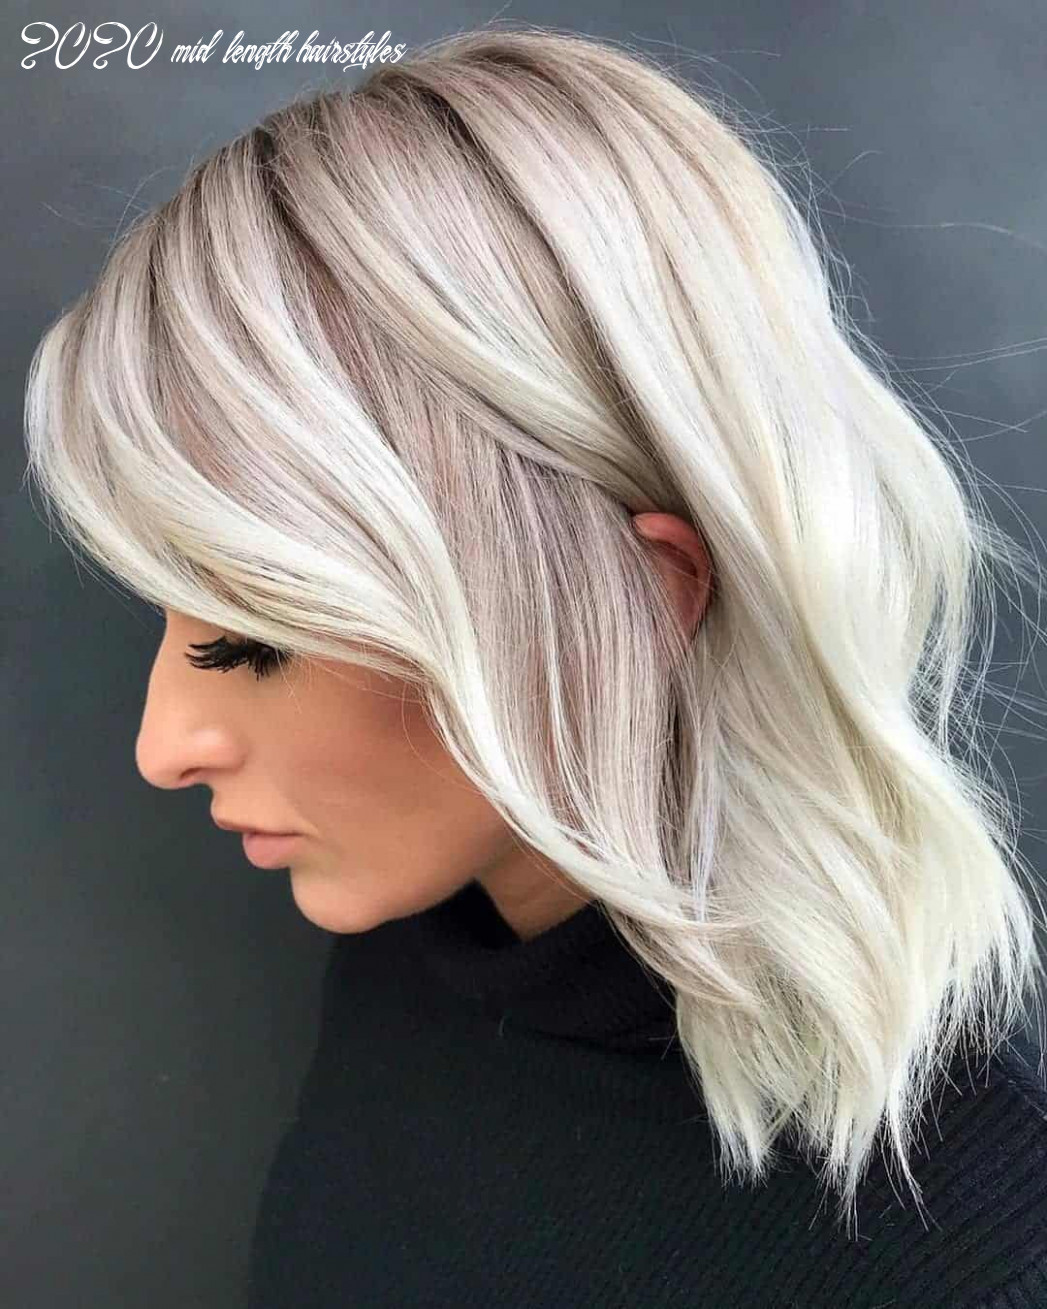 Top 10 womens medium length hairstyles 10 (10 photos videos) 2020 mid length hairstyles